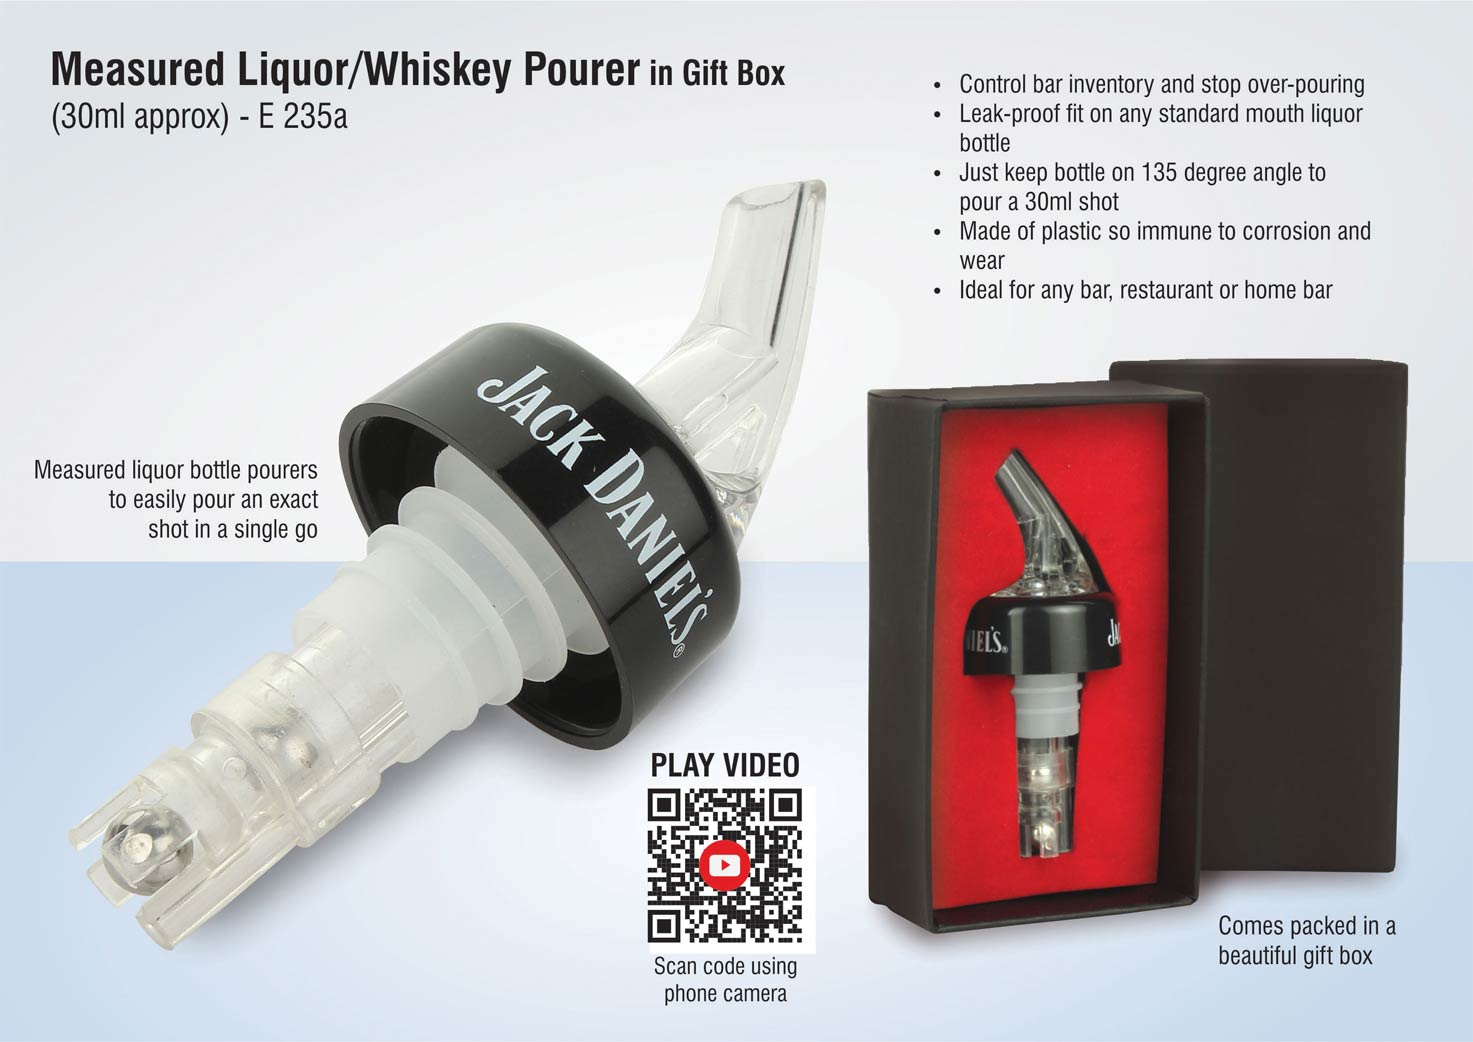 E235a - Measured Liquor/whiskey pourer in gift box (30ml approx)